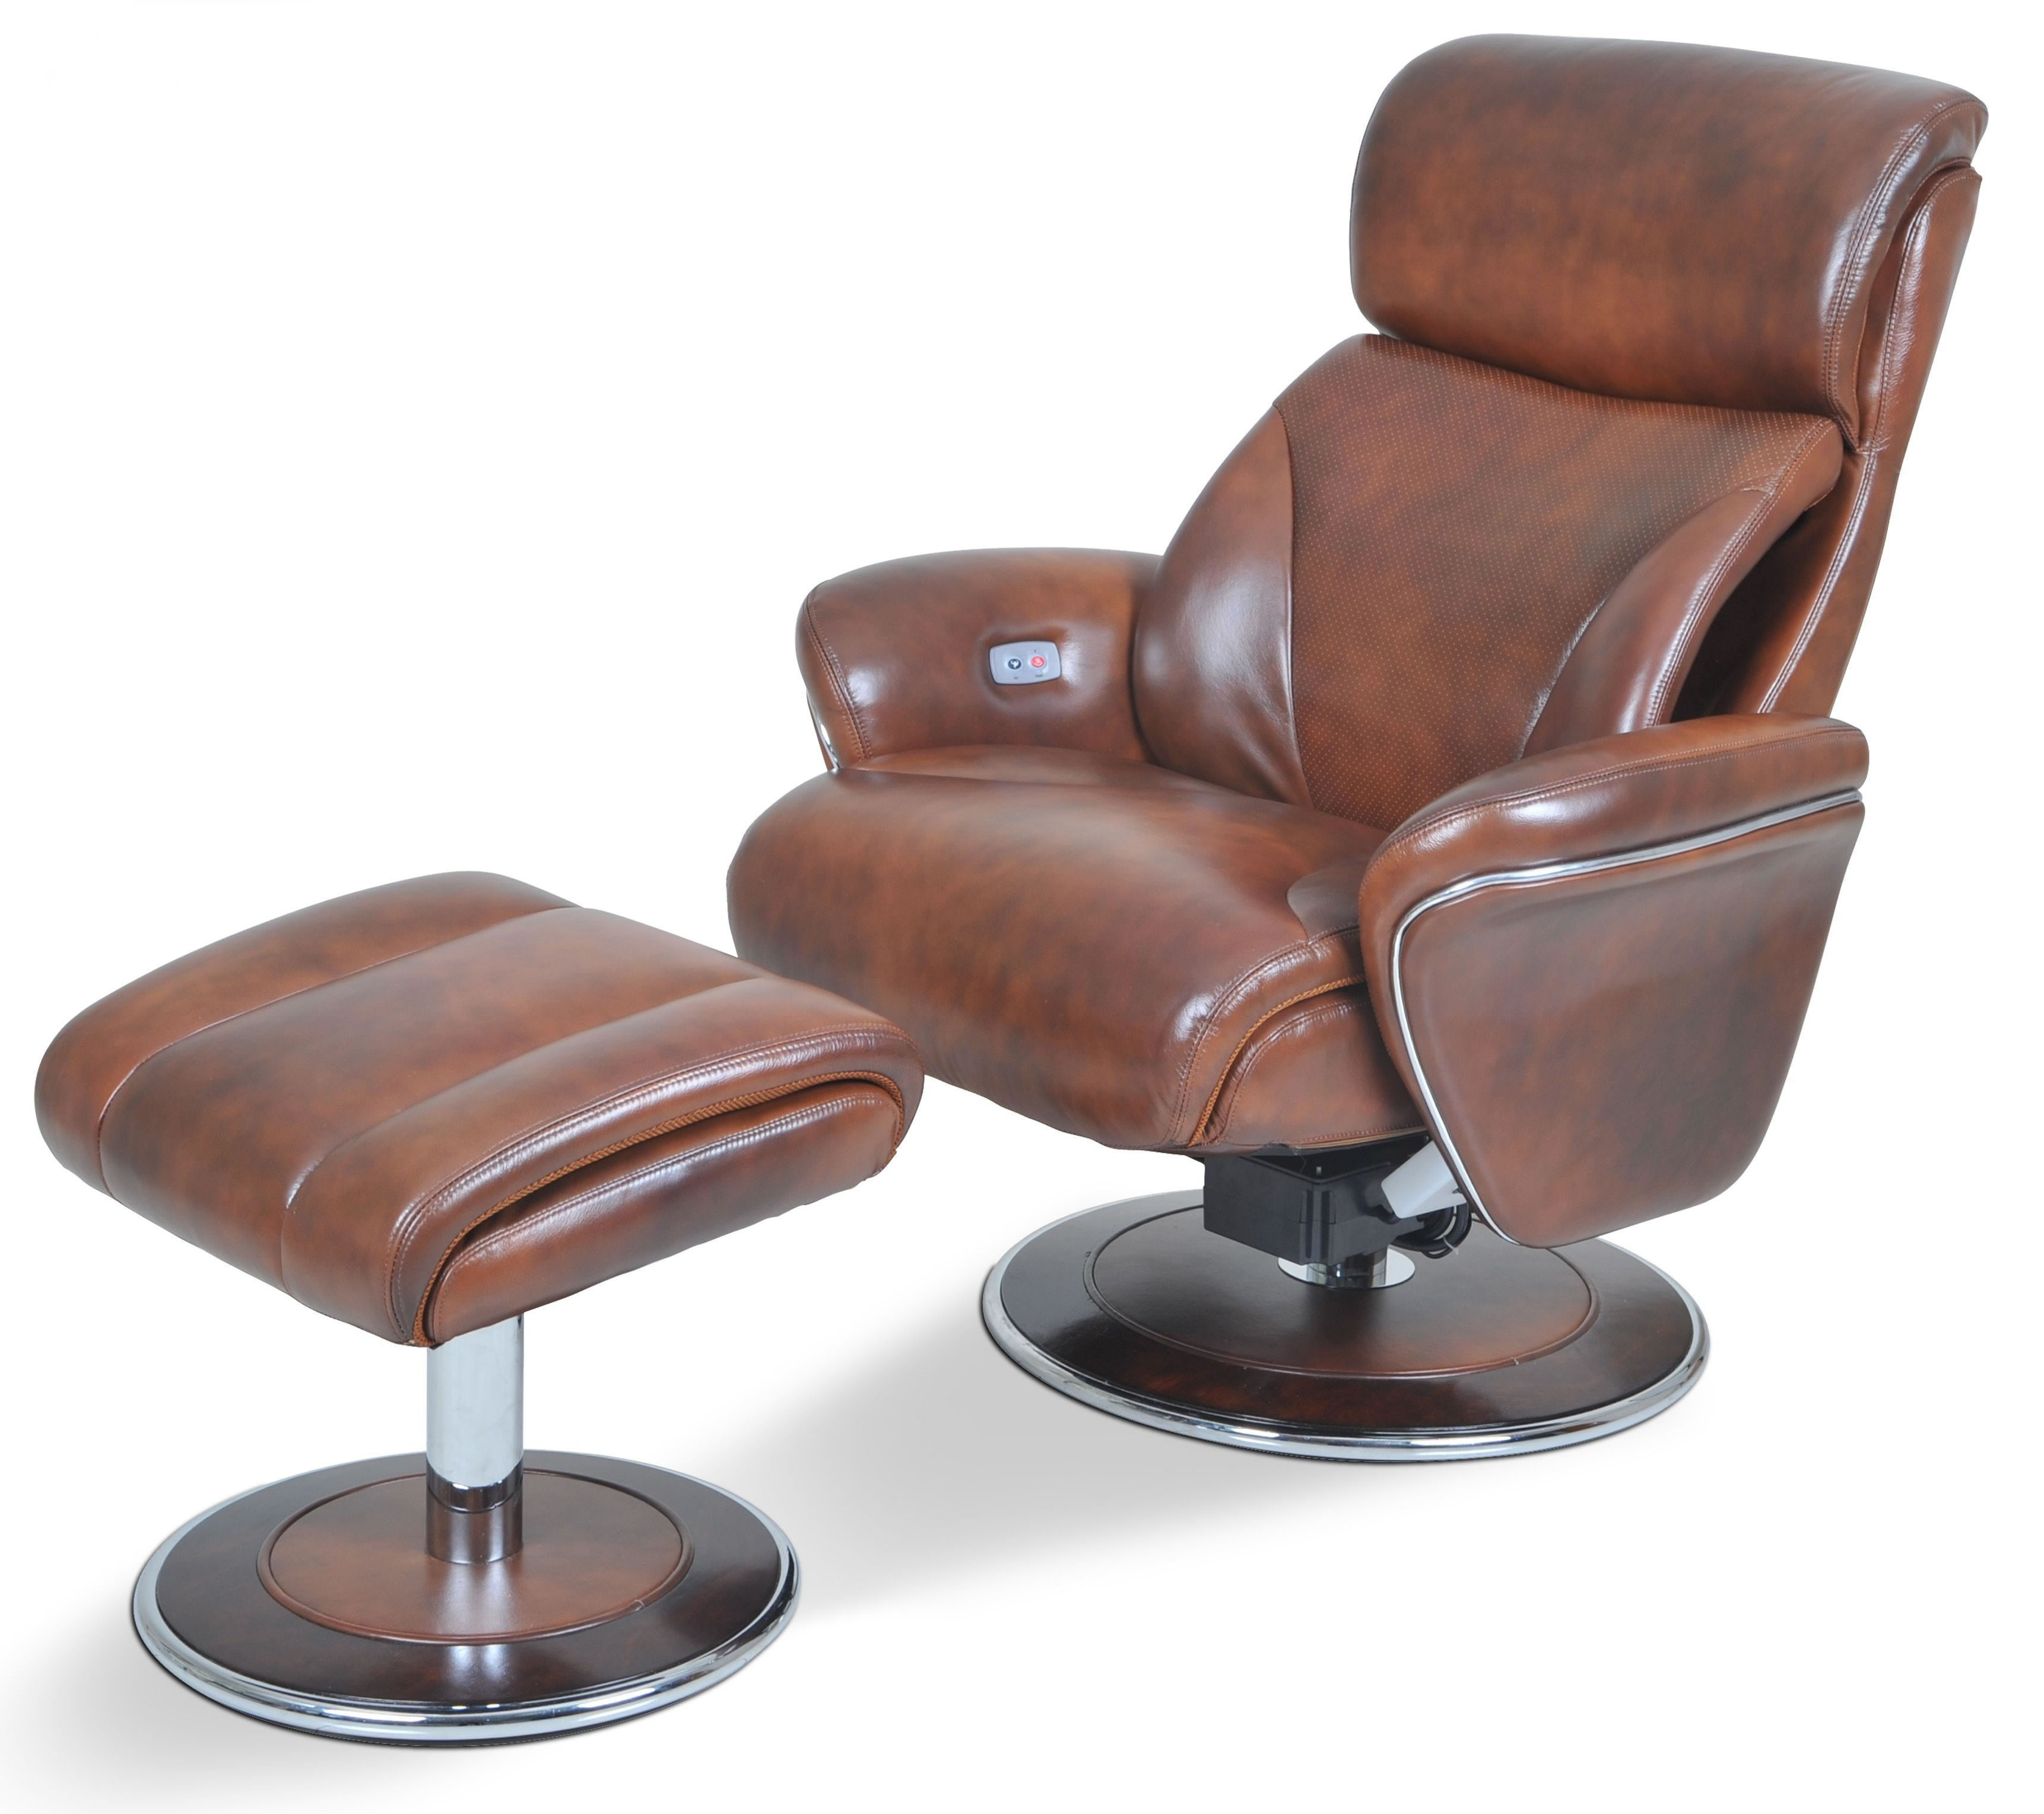 Ergonomic Leather Saddle Reclining Chair & Ottoman from